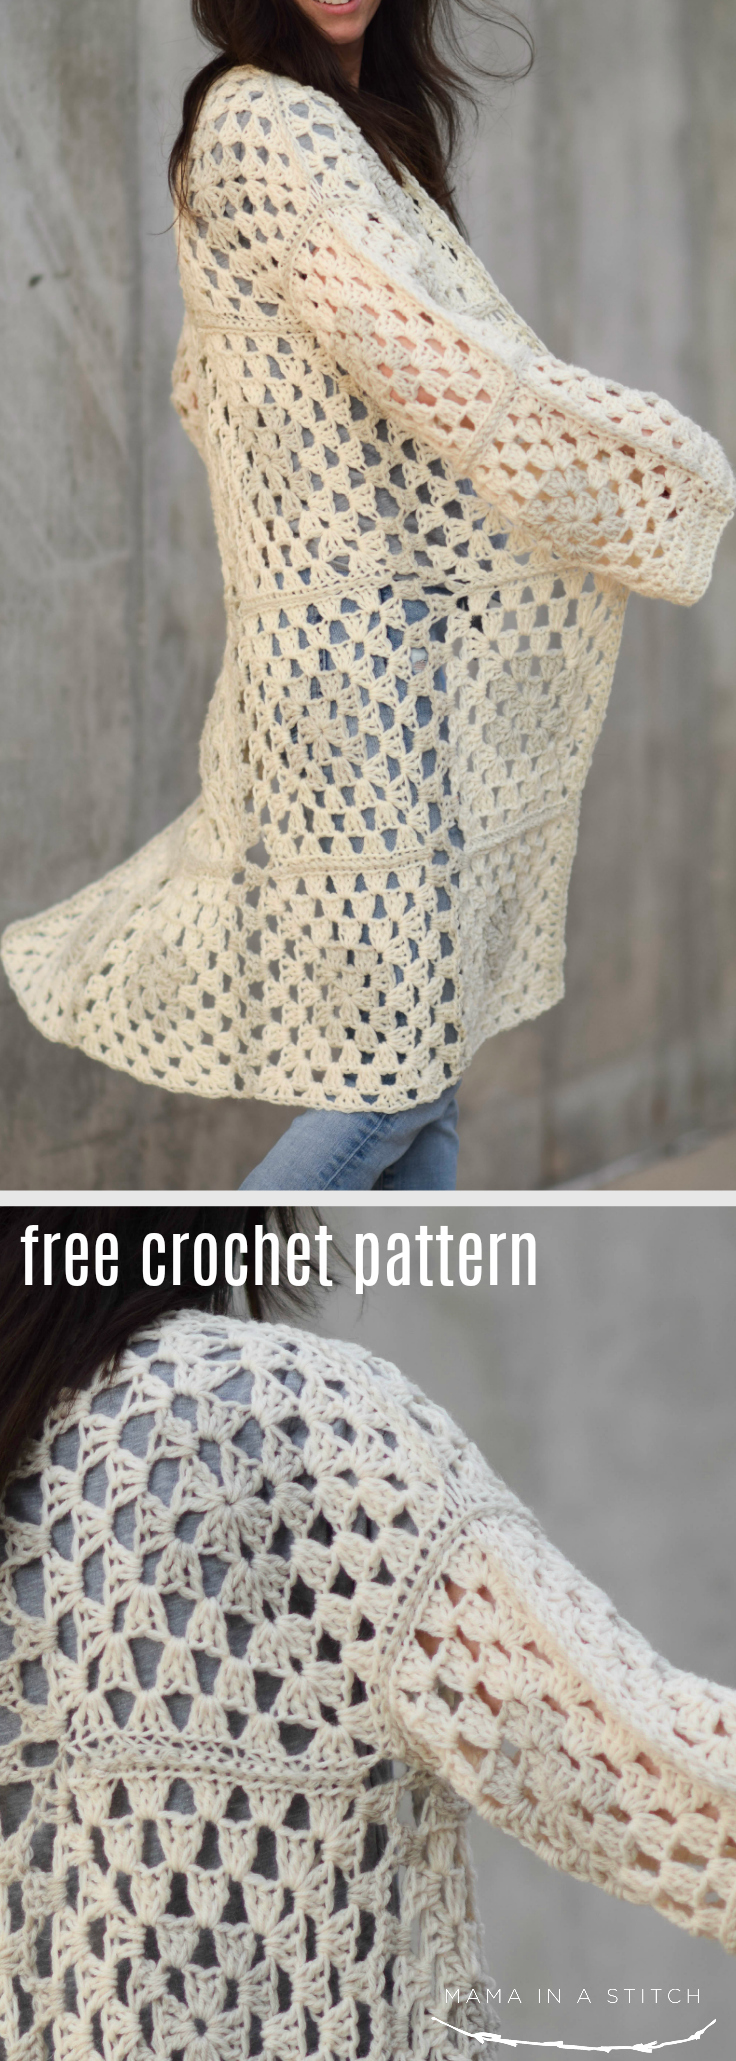 This crocheted sweater pattern is so cute for fall and winter! It's easy to make with granny squares and there are links to tutorials throughout the free pattern. #crochetpattern #diy #handmade #style #crafts #freepattern